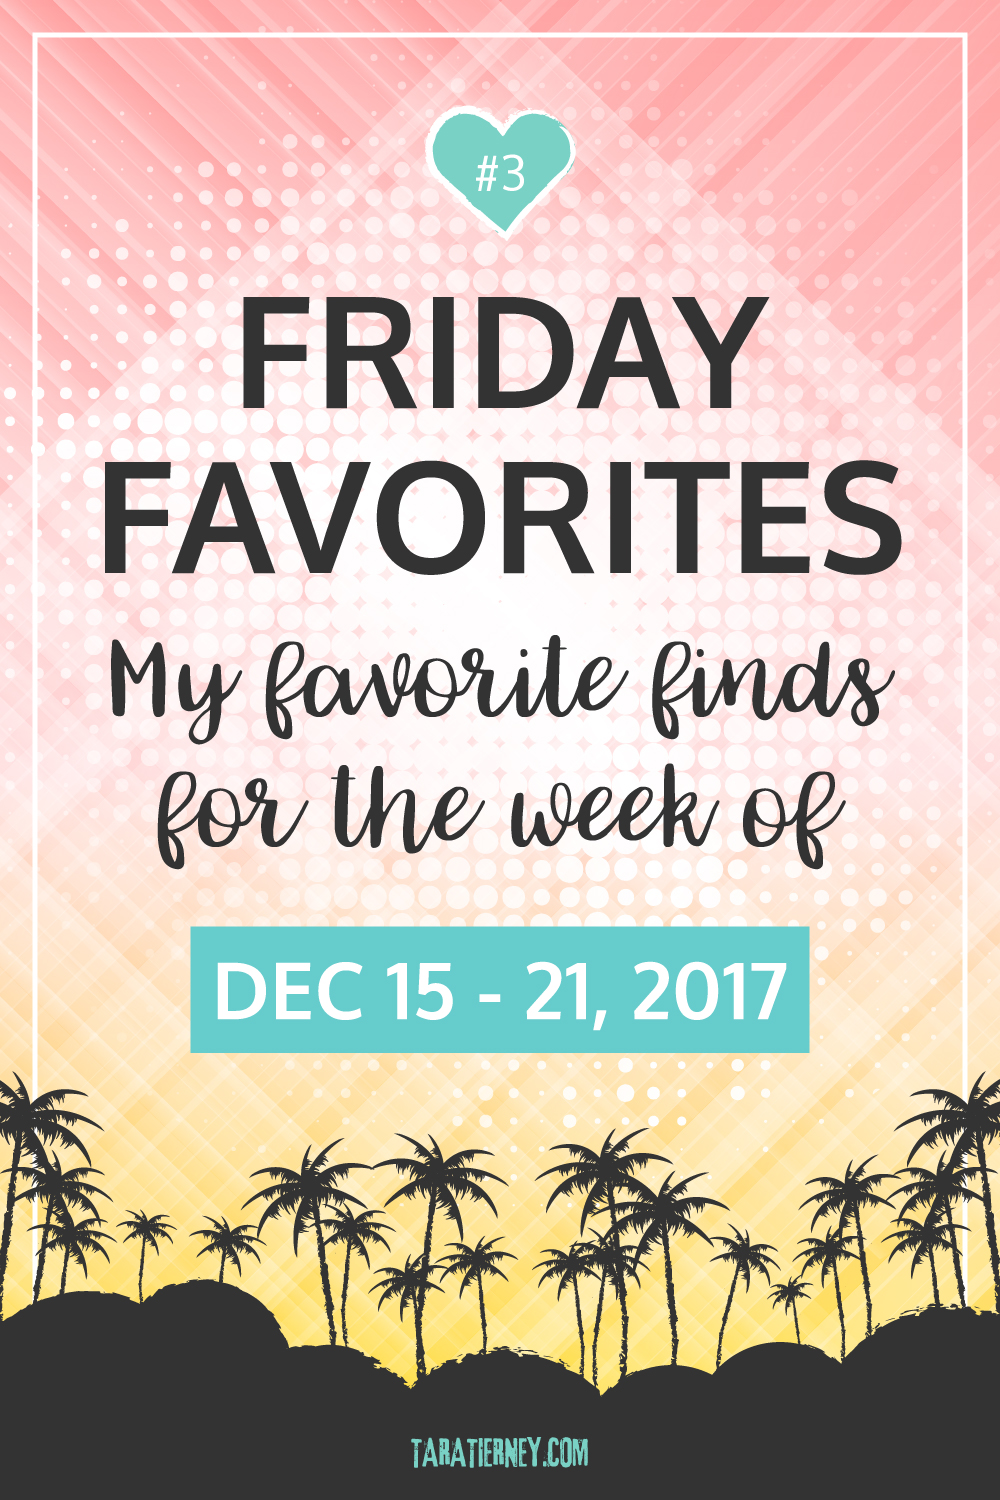 Friday Favorites 3 | December 15-21, 2017 | Tara Tierney